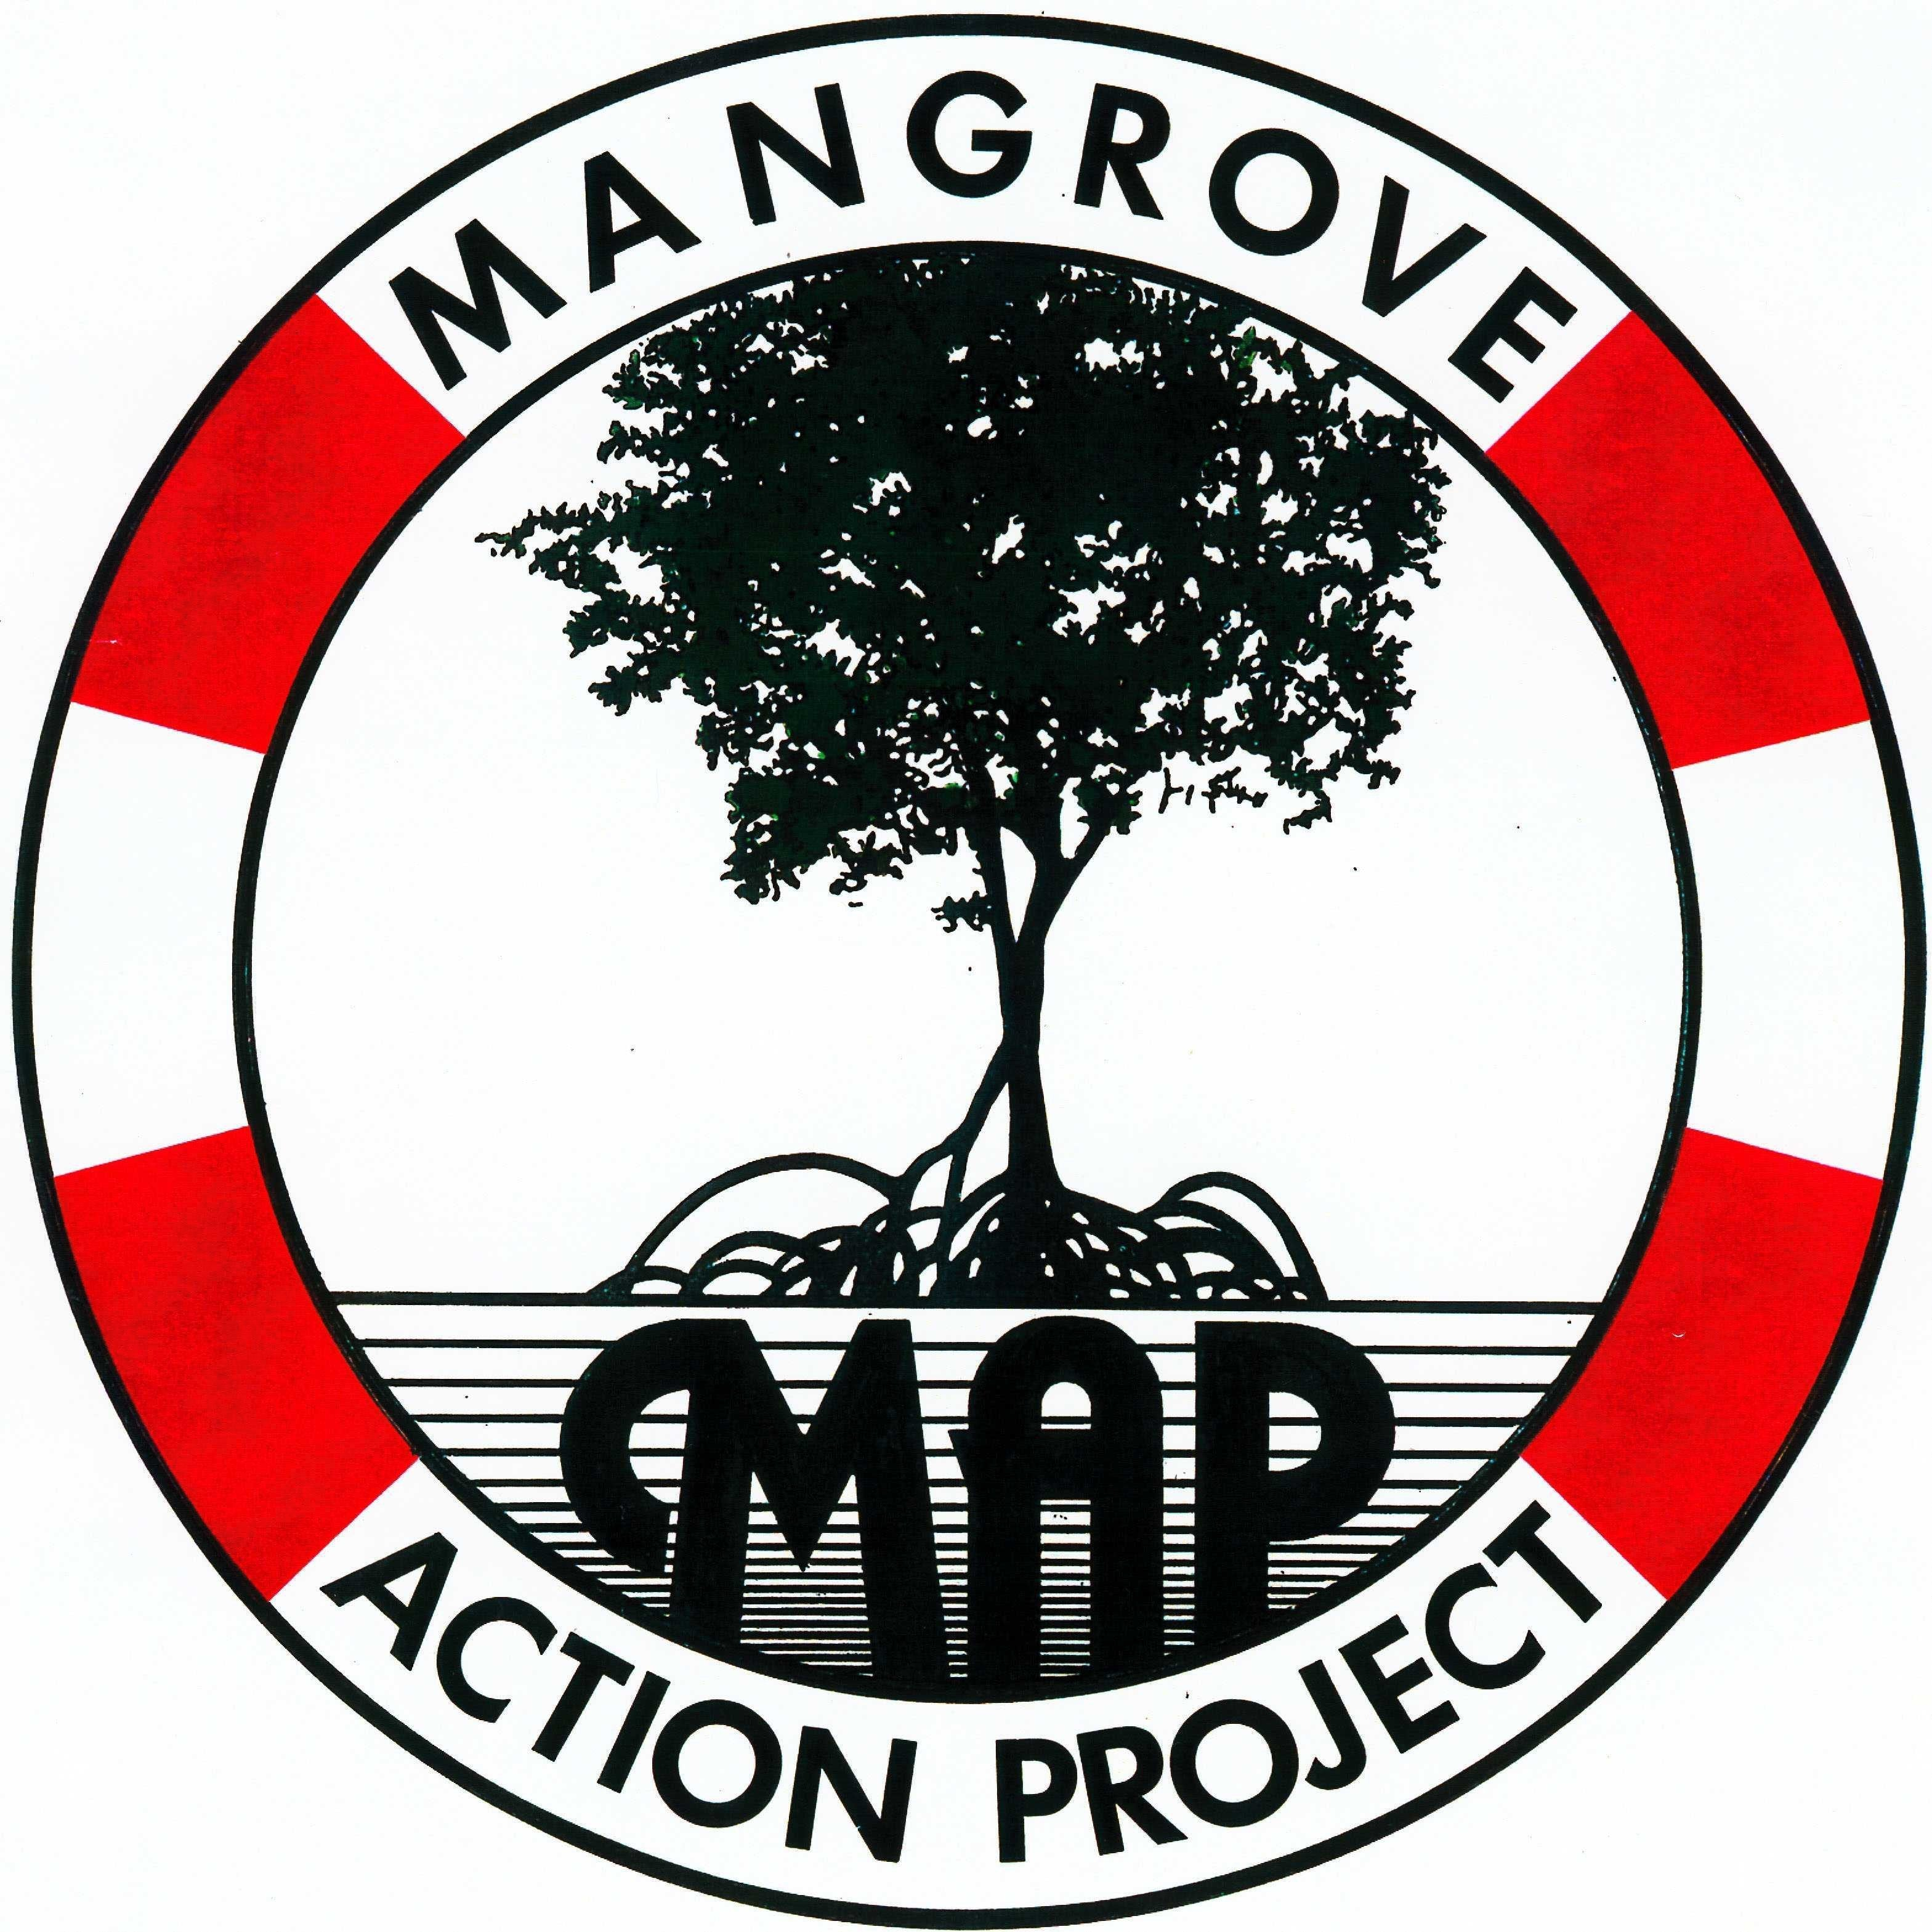 Mangrove Action Project logo